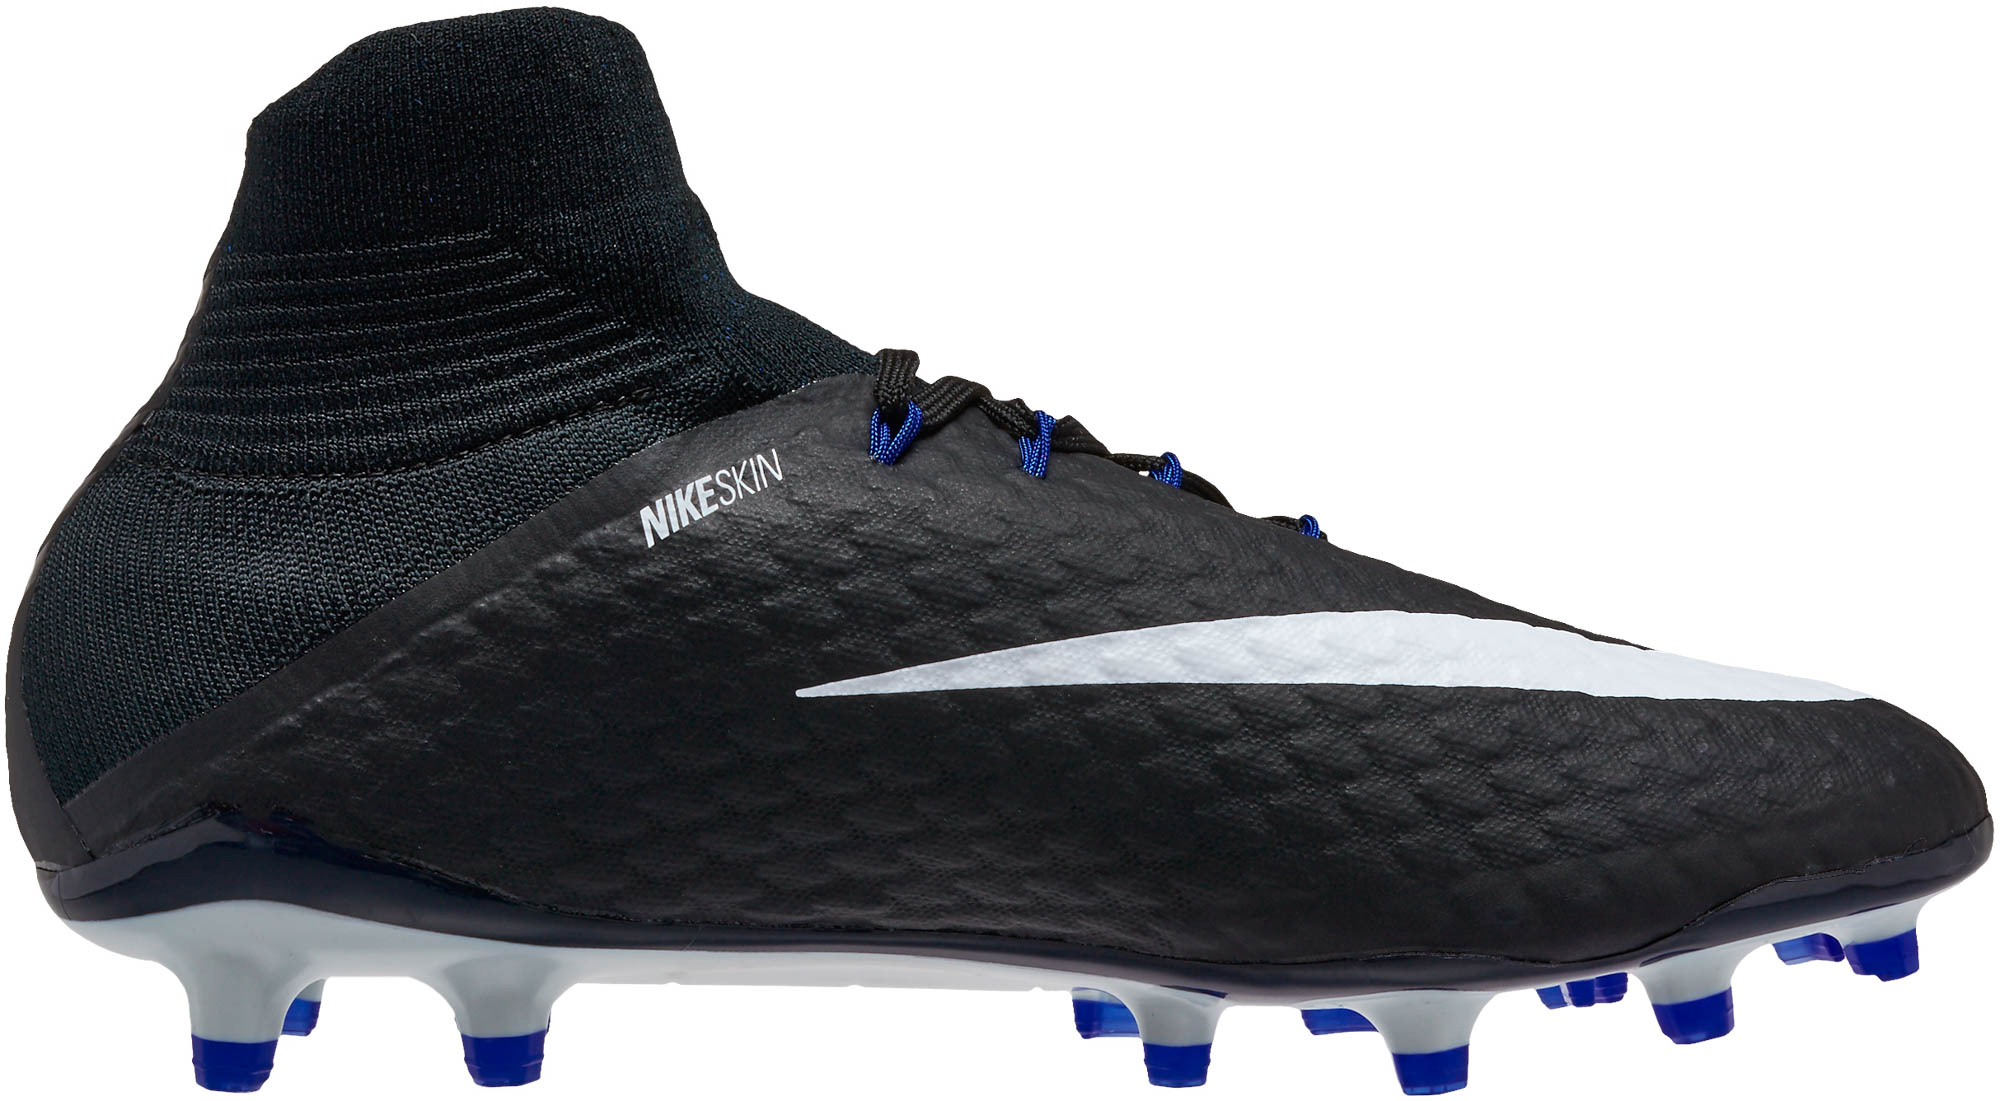 wholesale clearance prices pre order Nike Hypervenom Phatal III DF FG Soccer Cleats - Black ...